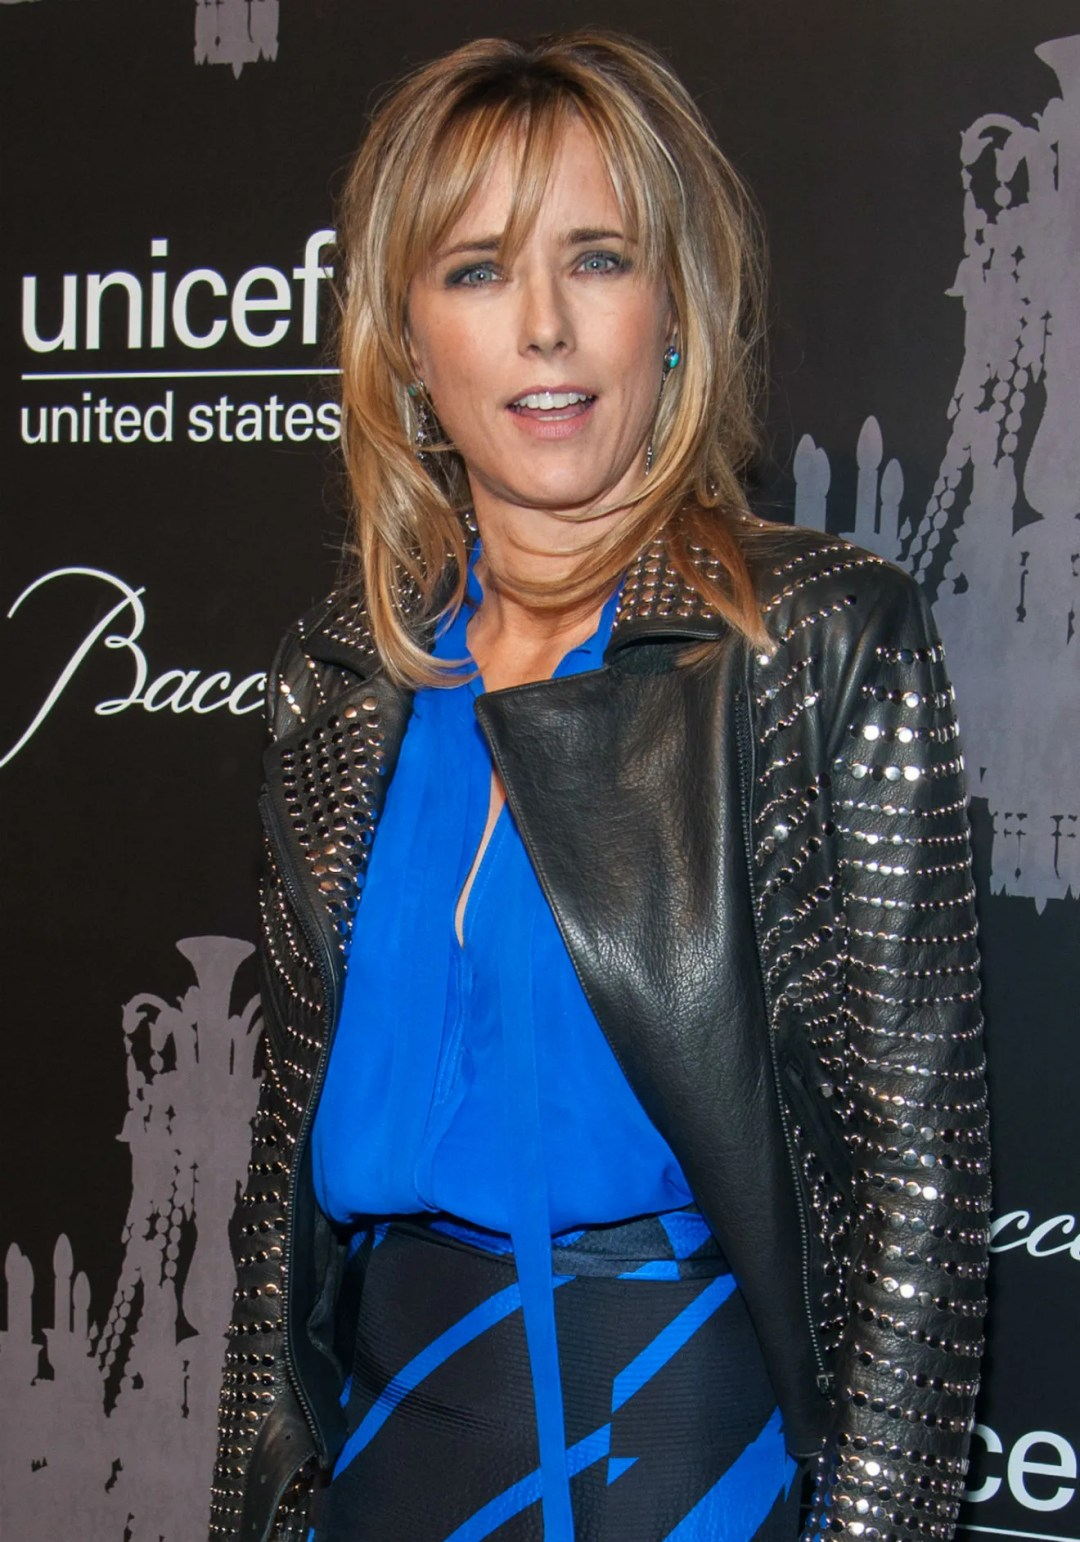 Tea Leoni Photo courtesy of Debbie Wong Shutterstock.com.